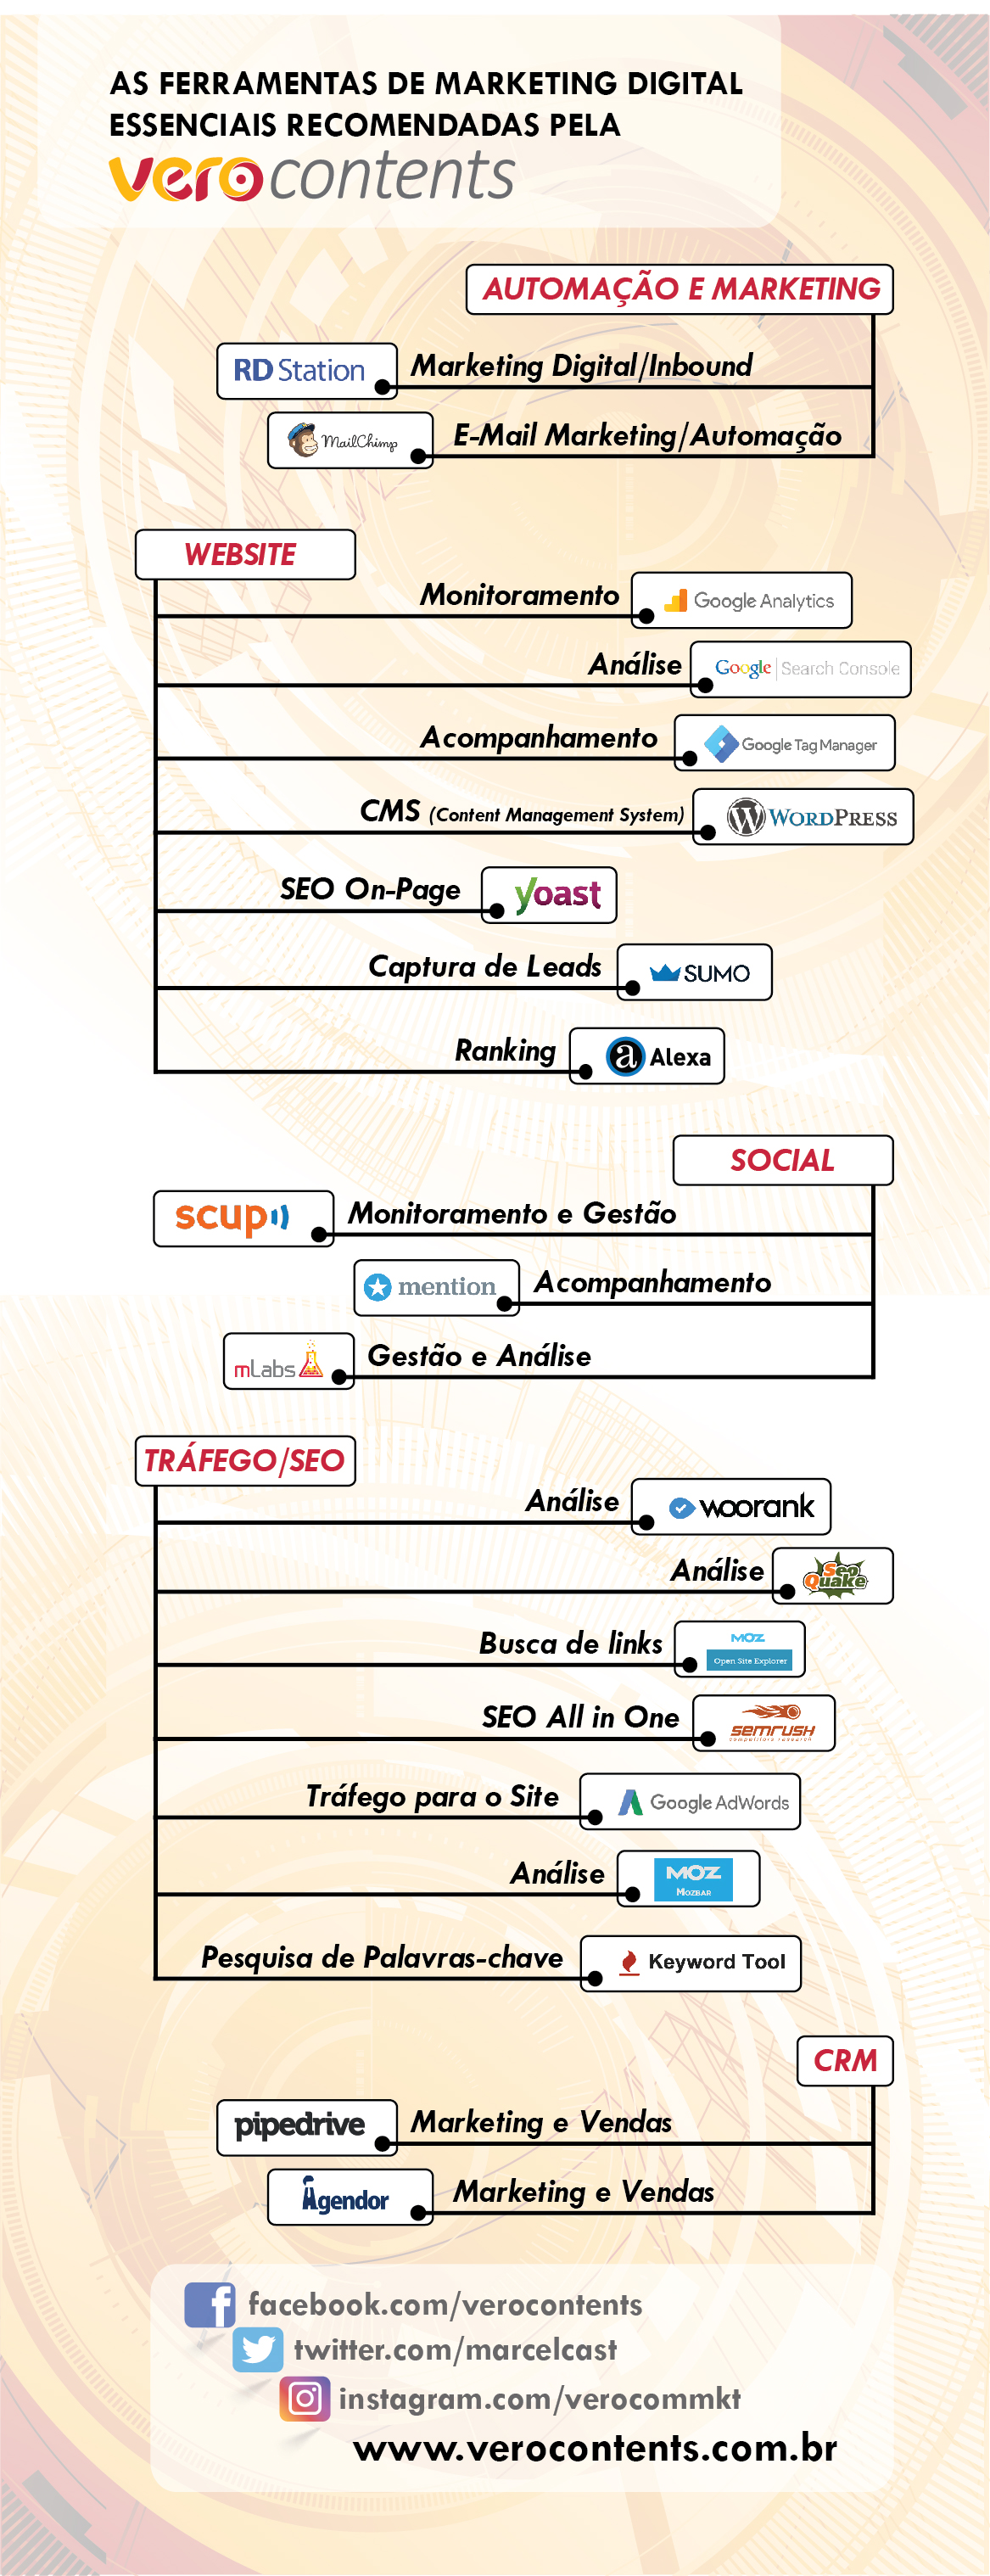 Ferramentas de marketing digital recomendadas pela Vero Contents